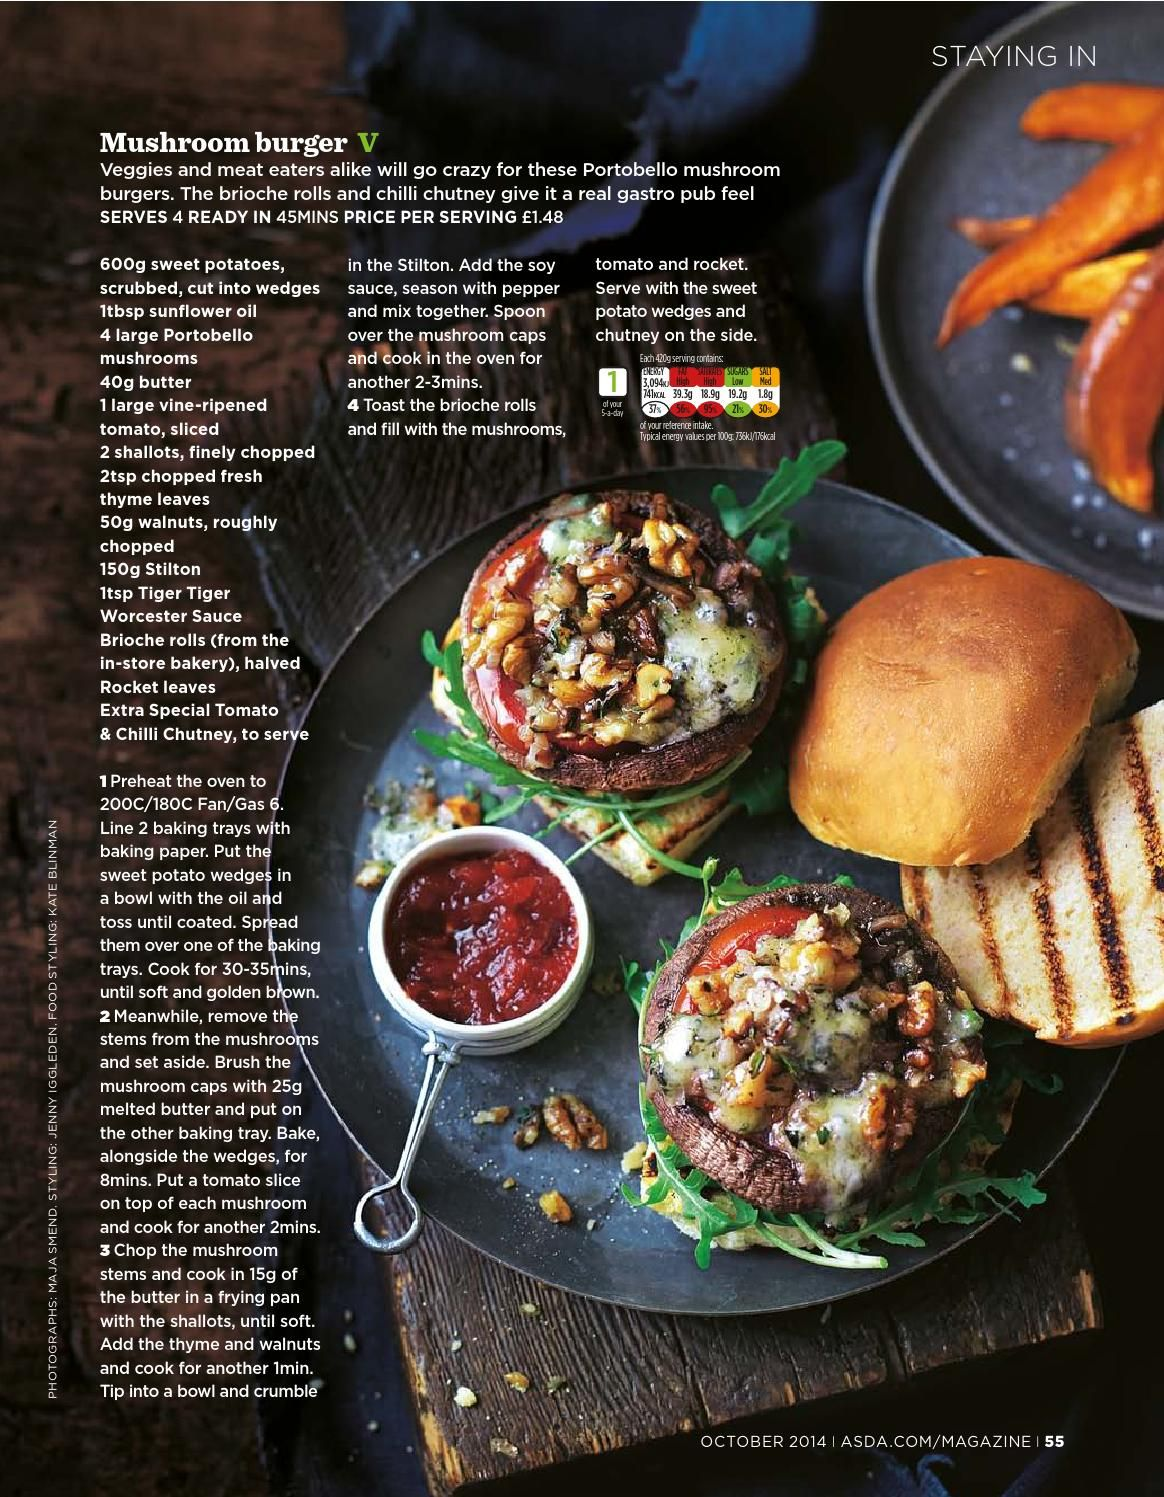 Asda Magazine - October 2014 by Asda - issuu